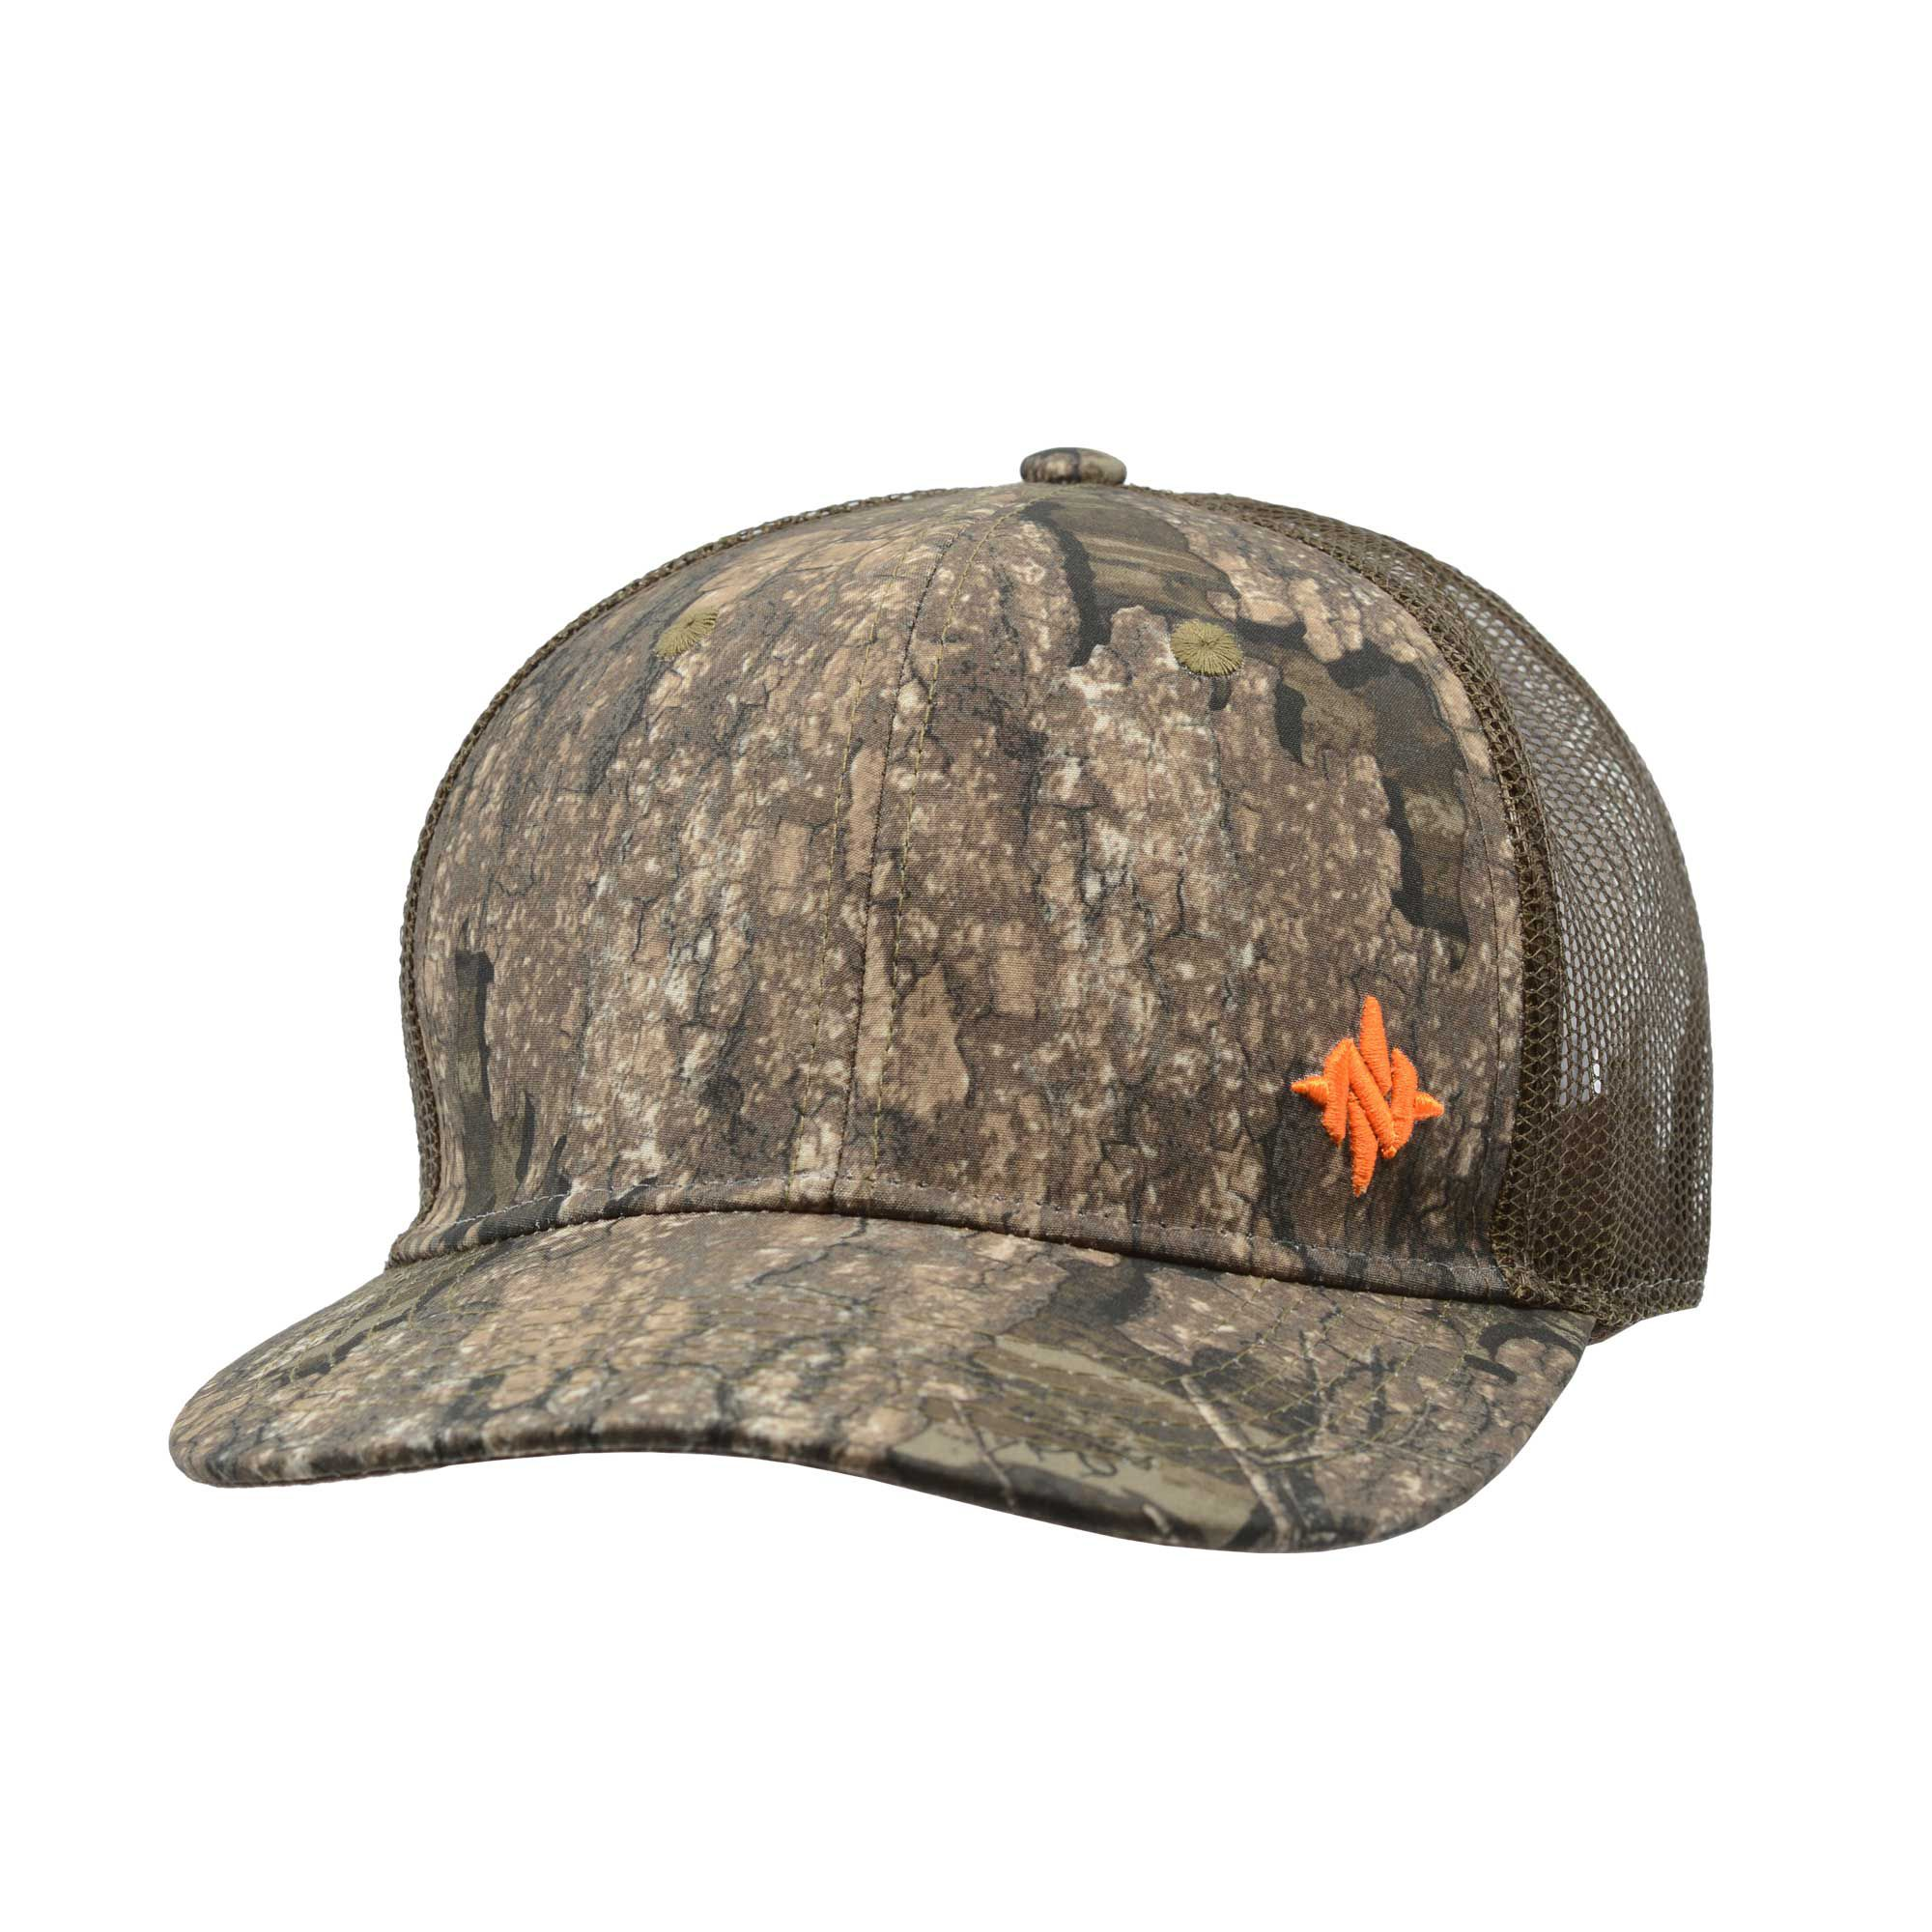 NOMAD Men's Mark Flatbill Trucker Hat, Size: One size, Timber Realtree/AP thumbnail